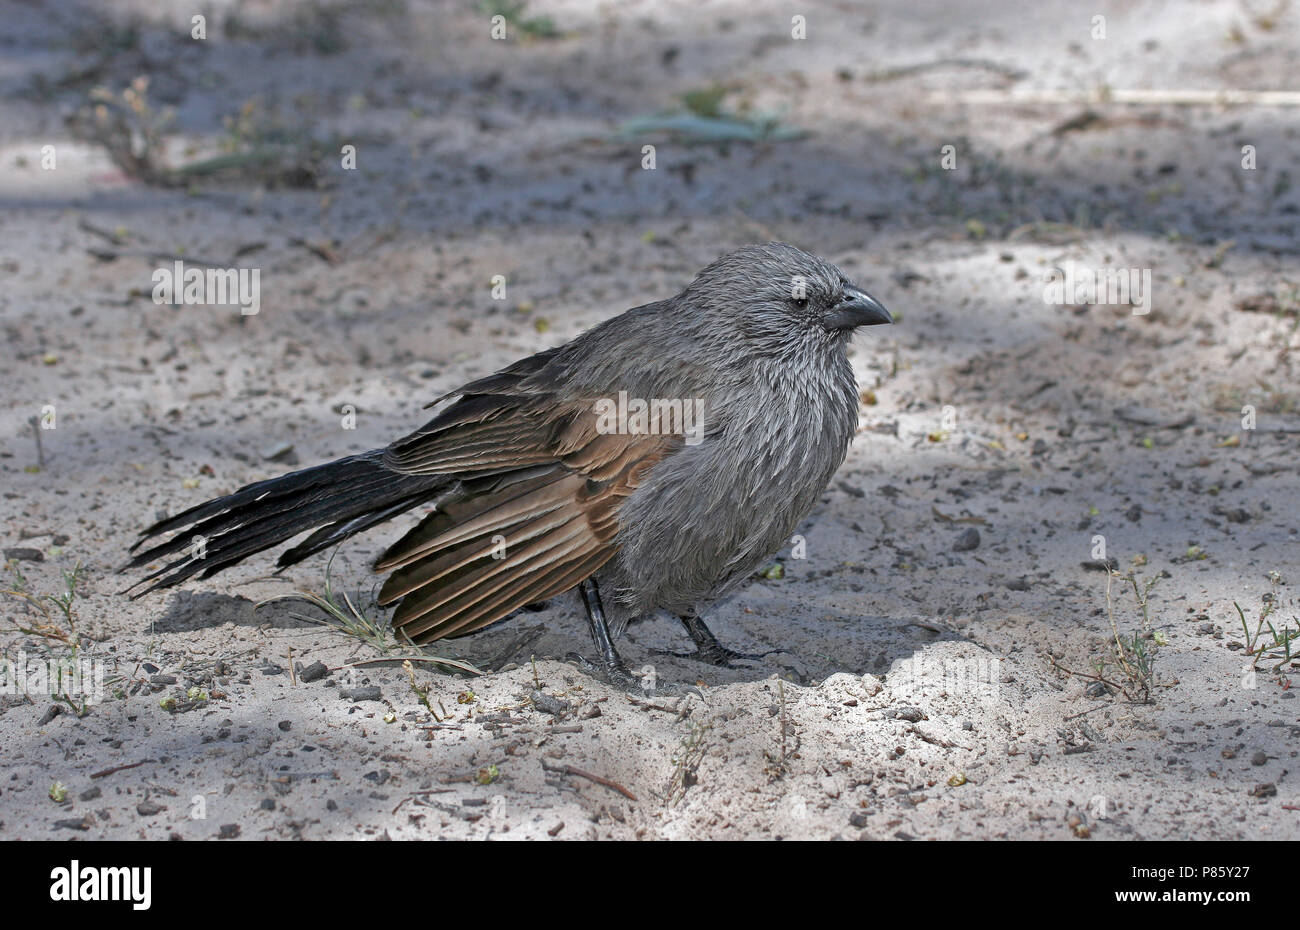 Apostlebird (Struthidea cinerea), a quick-moving, gray or black bird and native to Australia often travelling in groups of about 12; for this reason t - Stock Image